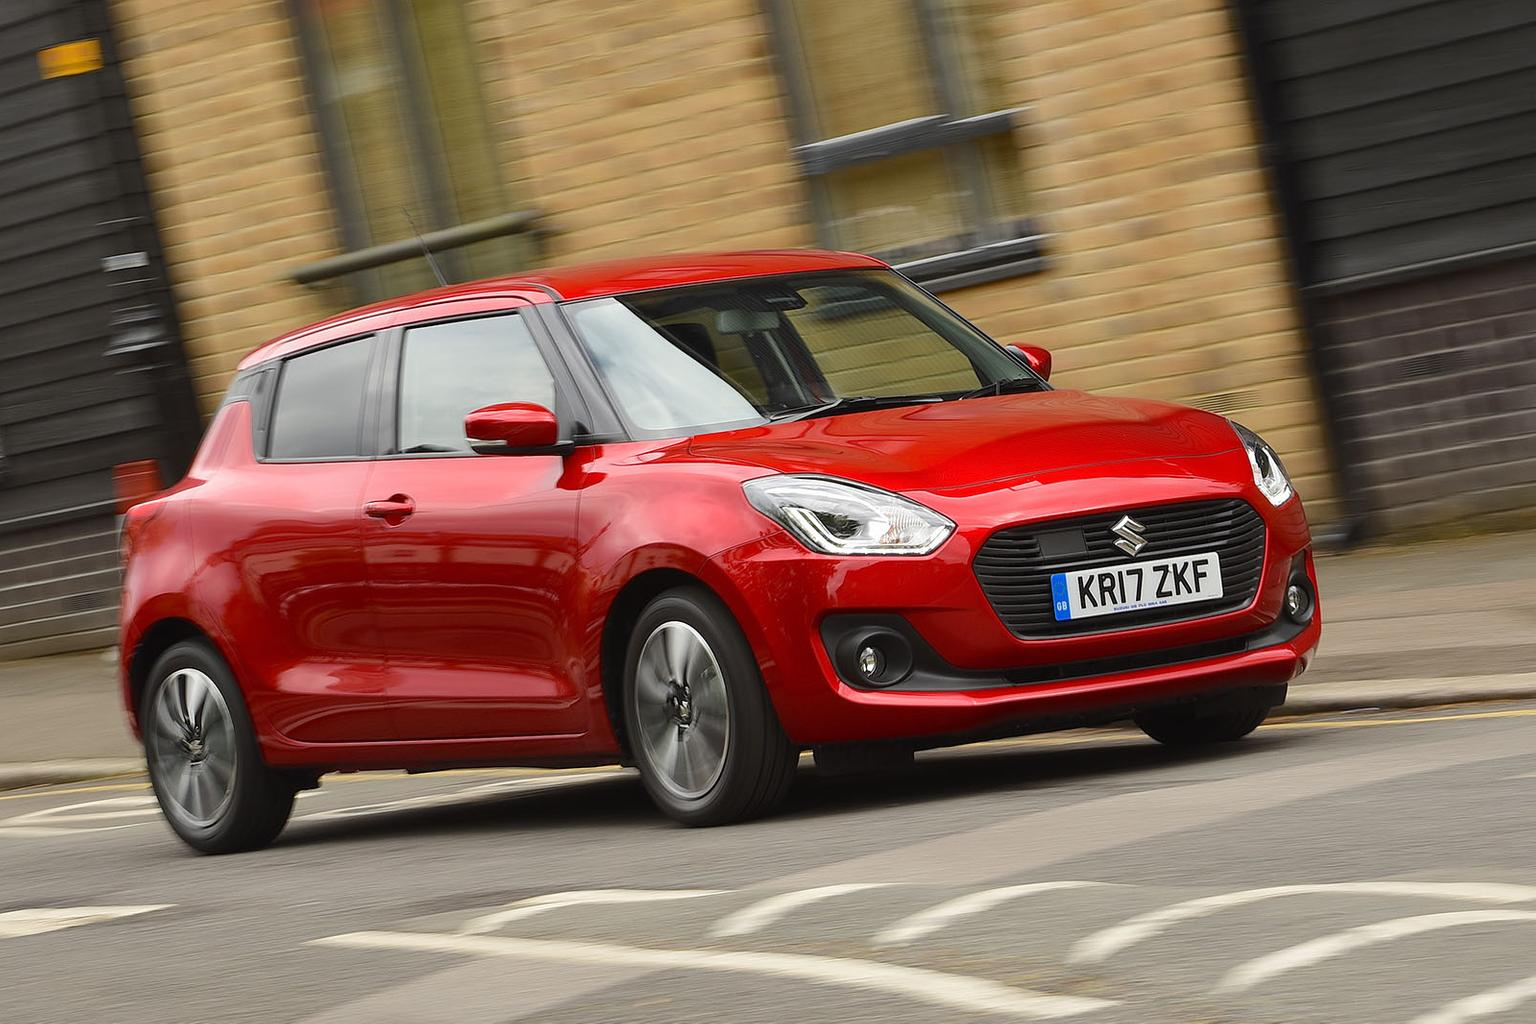 New Suzuki Swift vs Hyundai i20